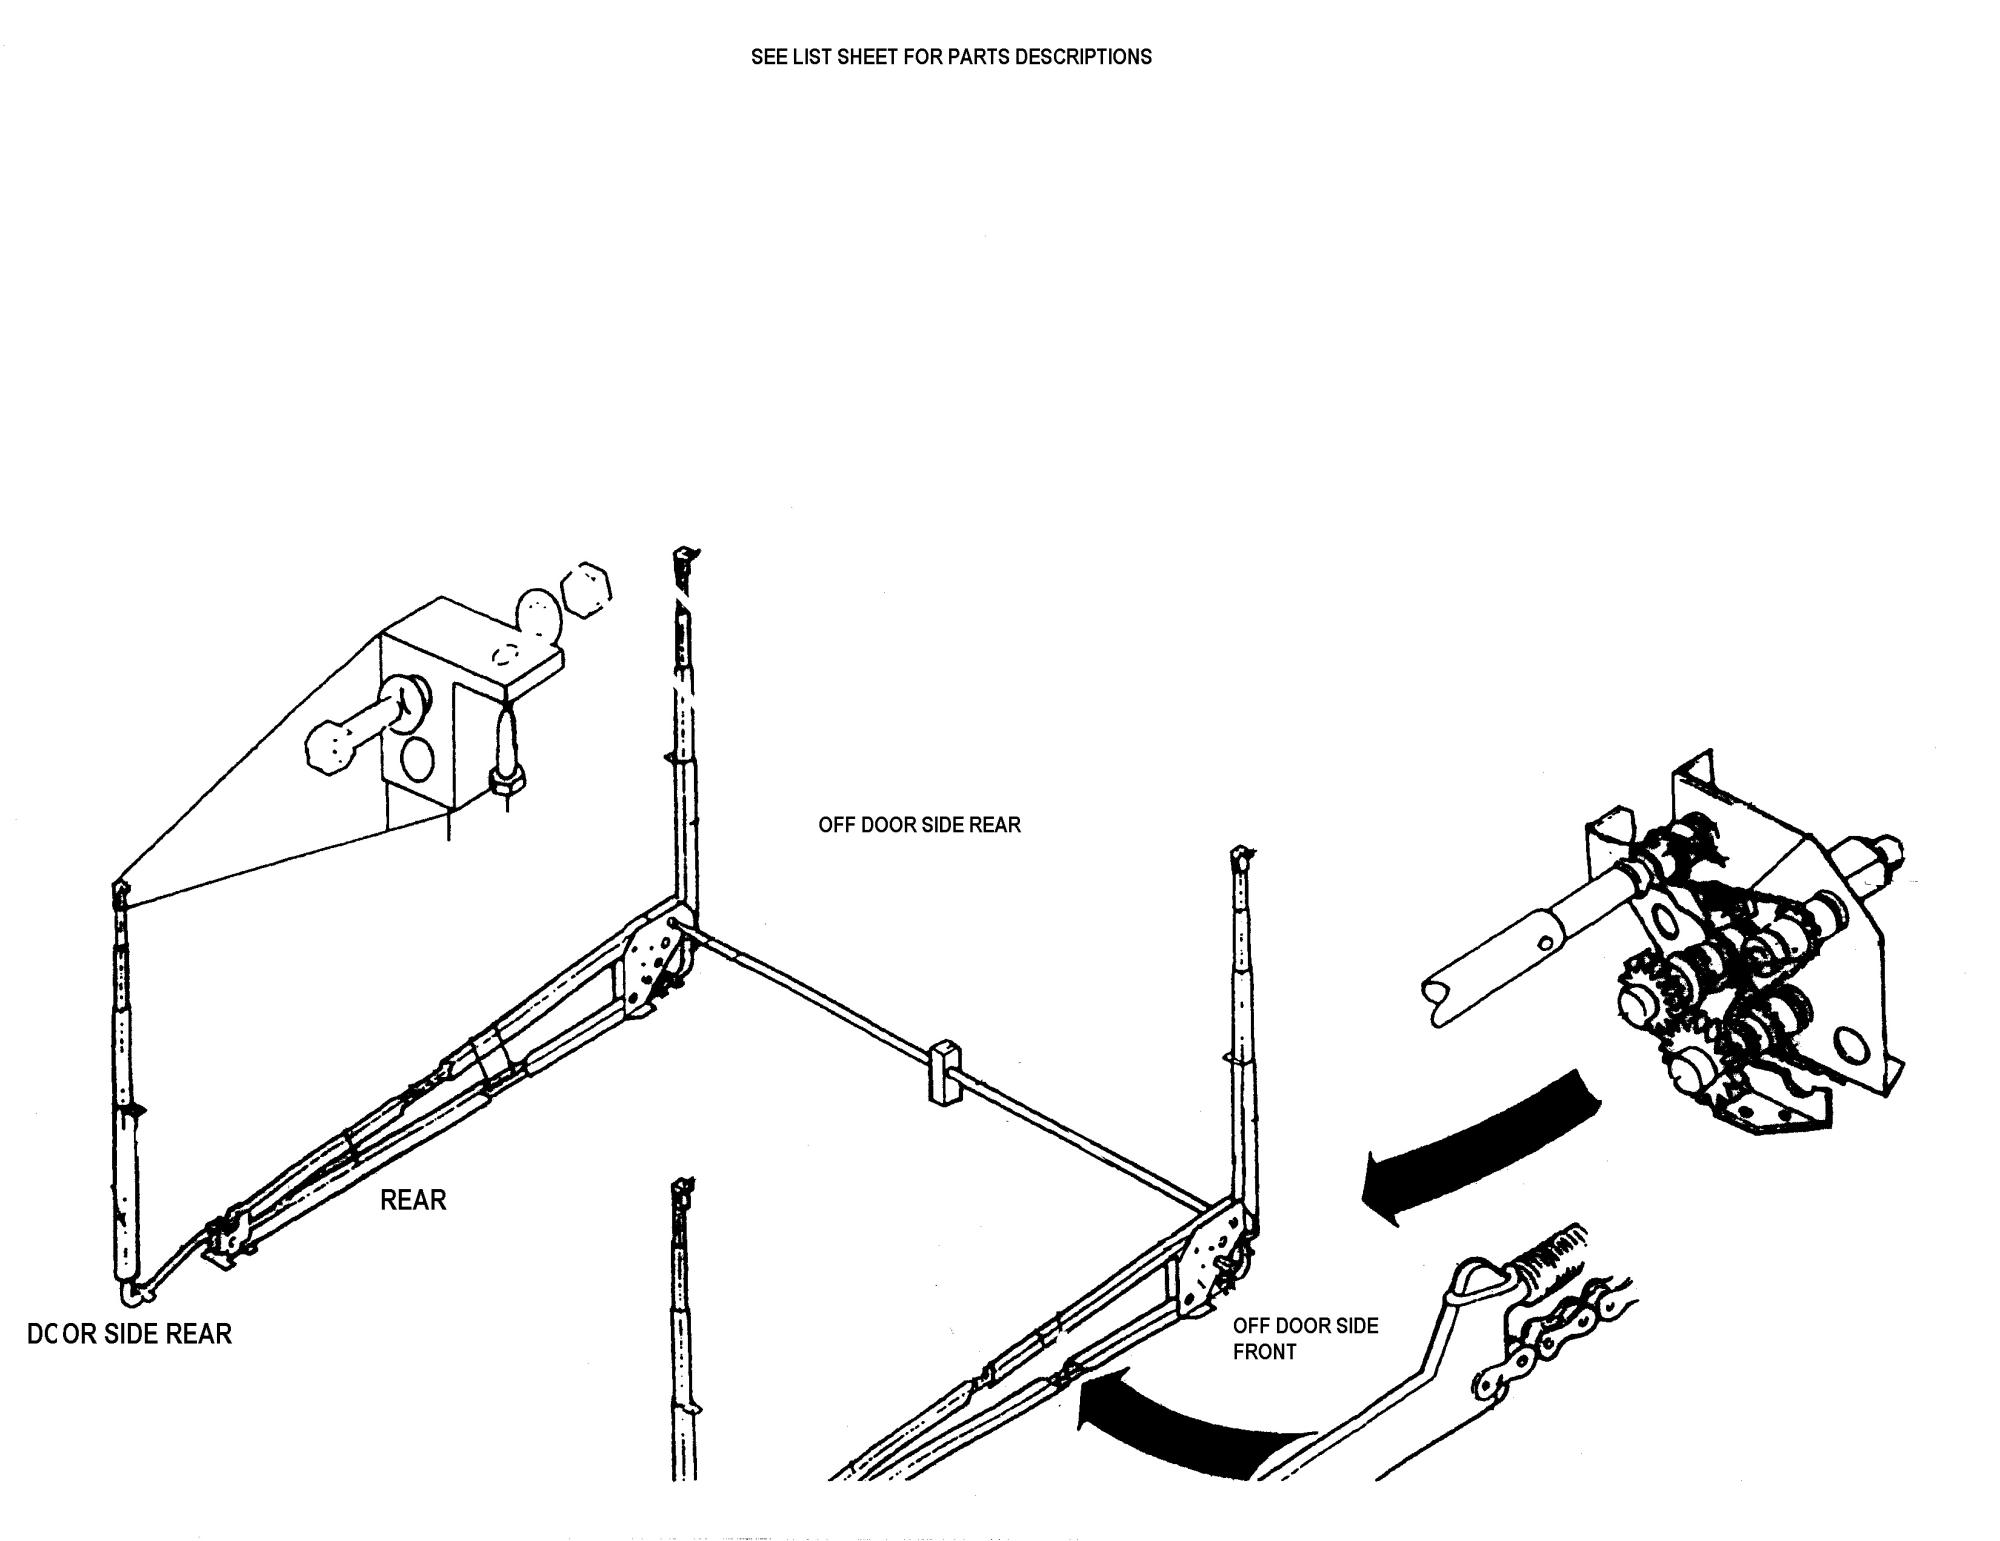 coleman pop up camper parts manual